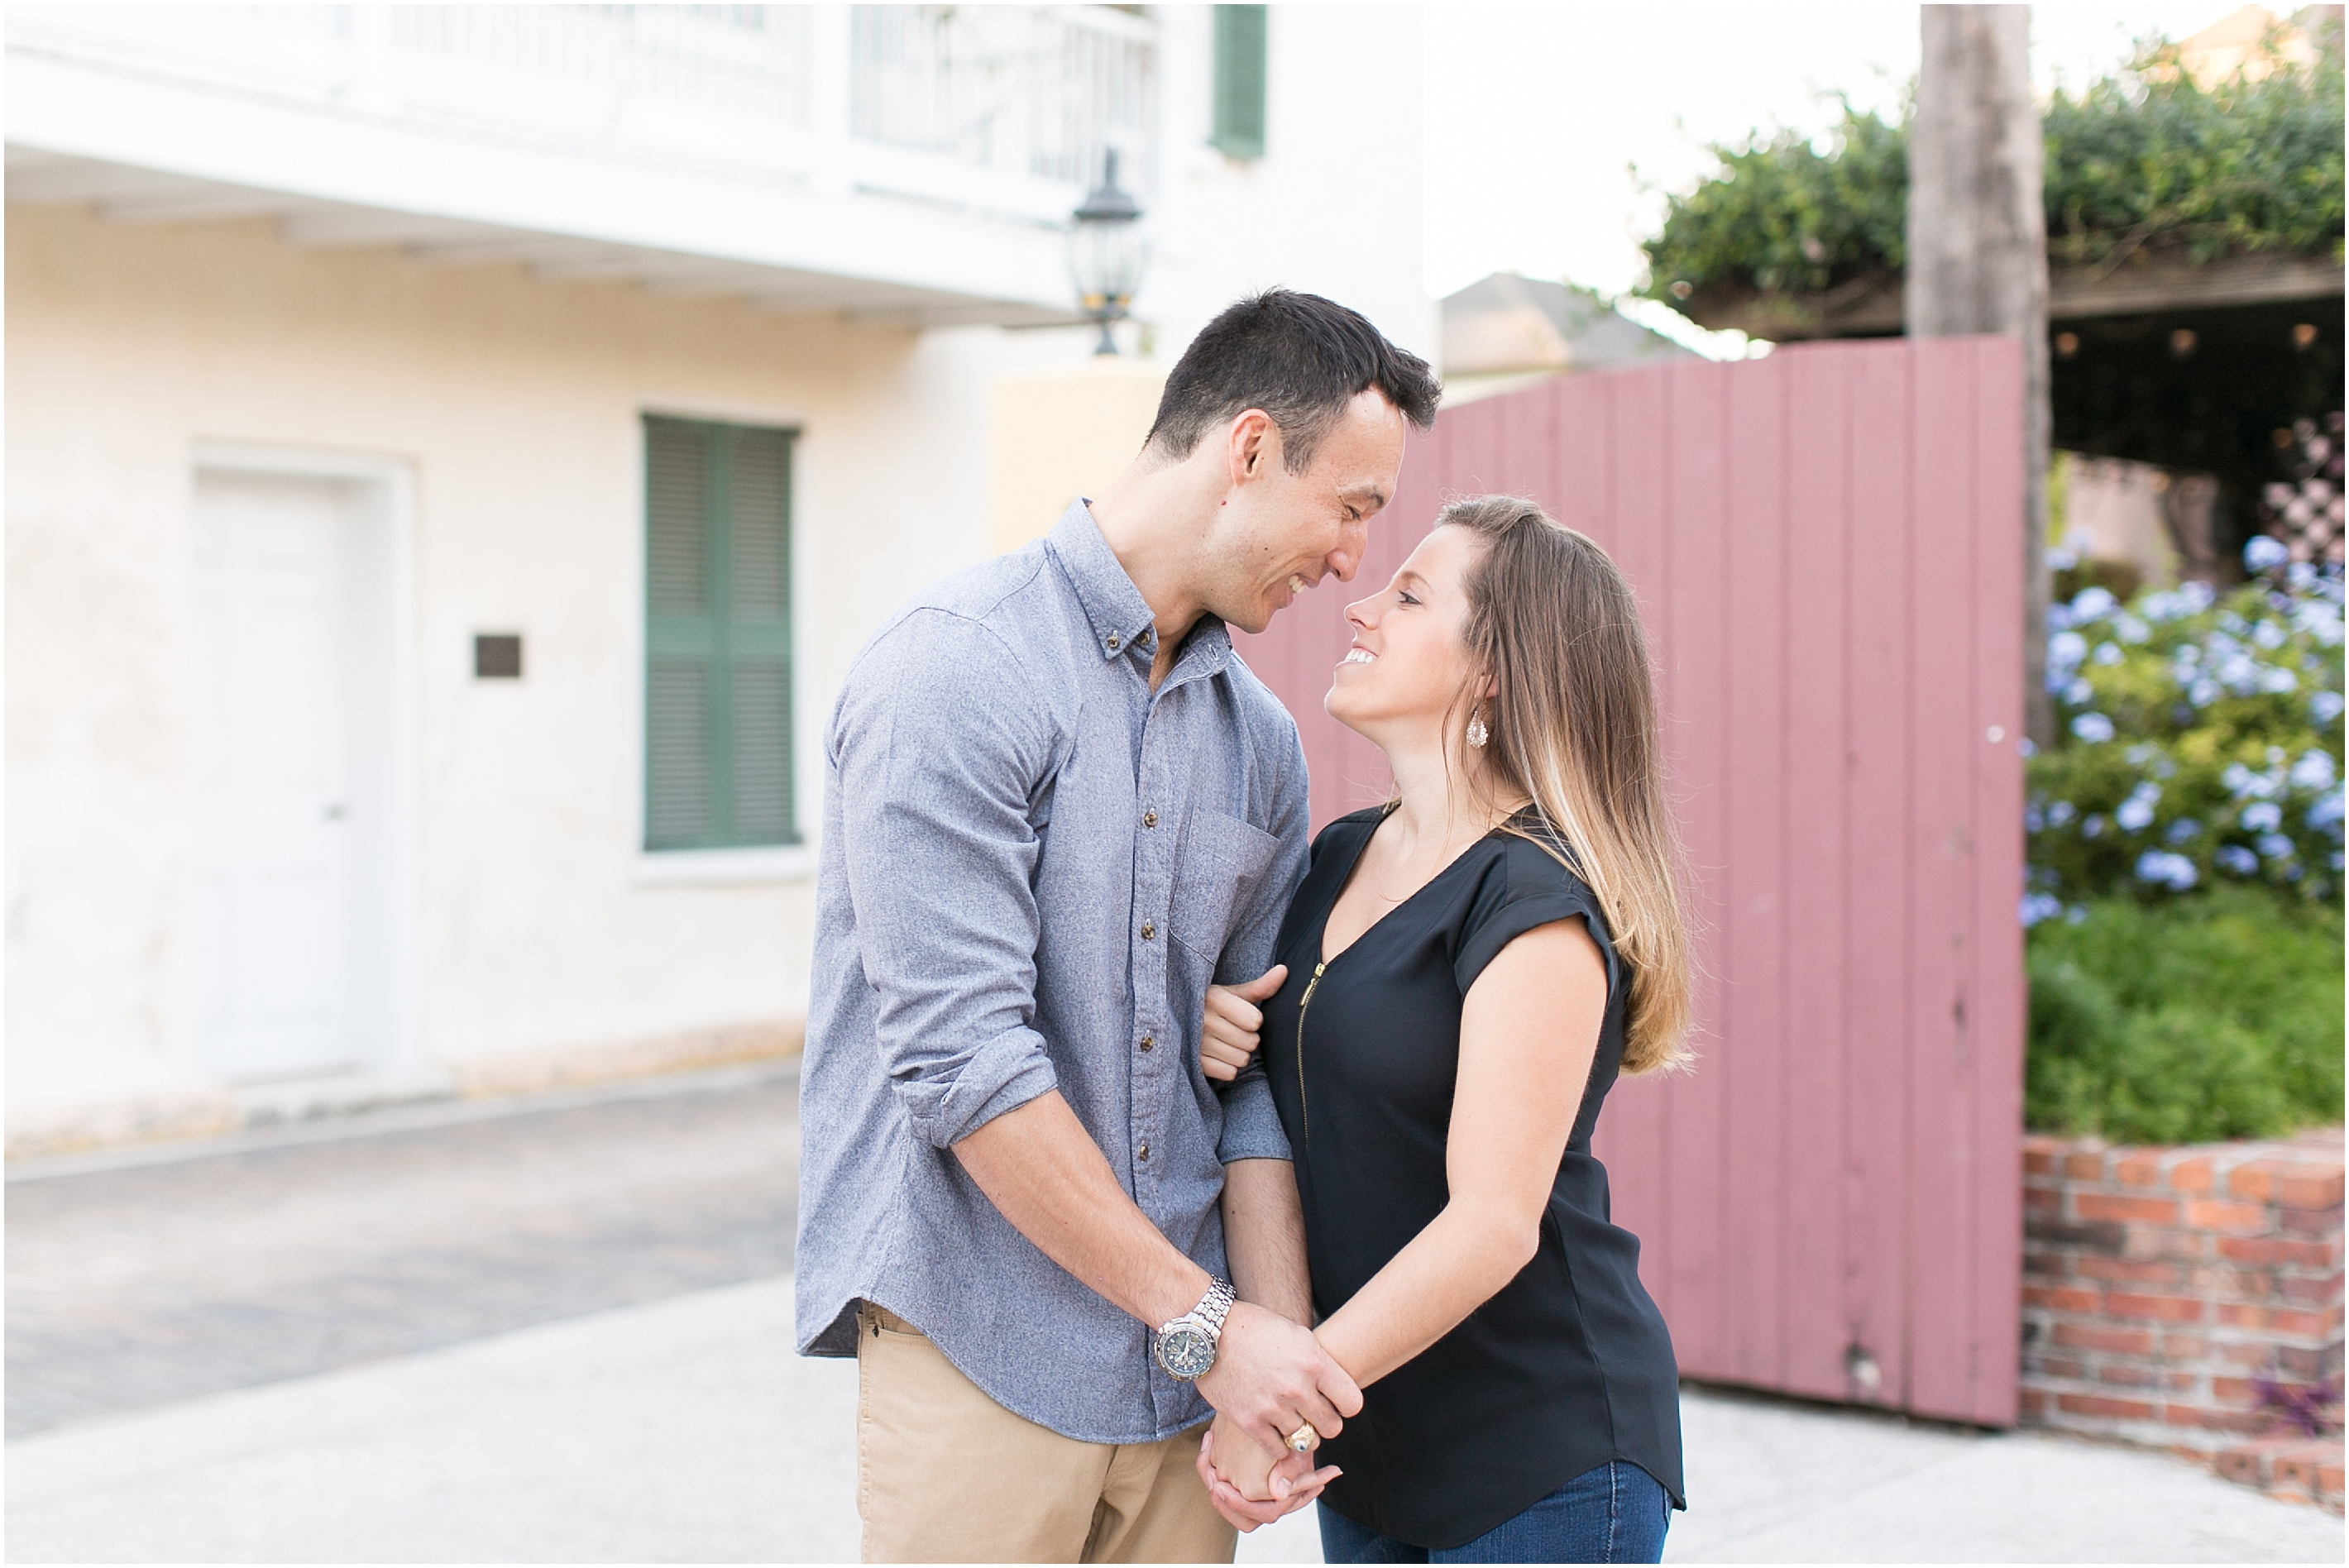 va_jessica_ryan_photography_st_augustine_florida_destination_engagement_photography_0144